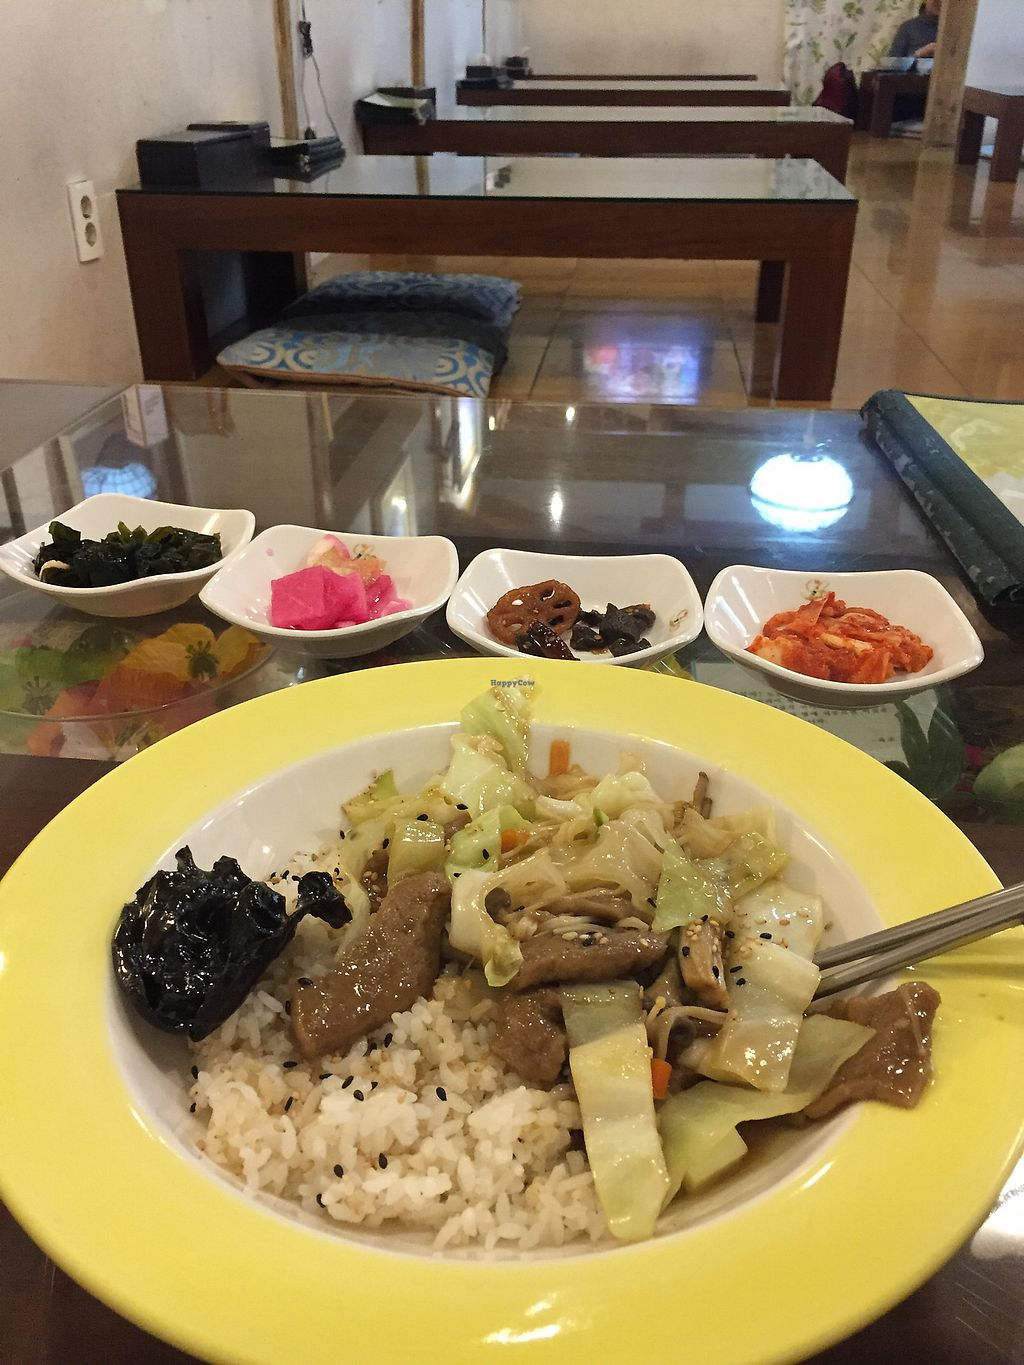 "Photo of Oh Se Gae Hyang - 오세계향  by <a href=""/members/profile/lola131"">lola131</a> <br/>מנת בקר טבעונית עם אורז <br/> October 25, 2017  - <a href='/contact/abuse/image/10860/318783'>Report</a>"